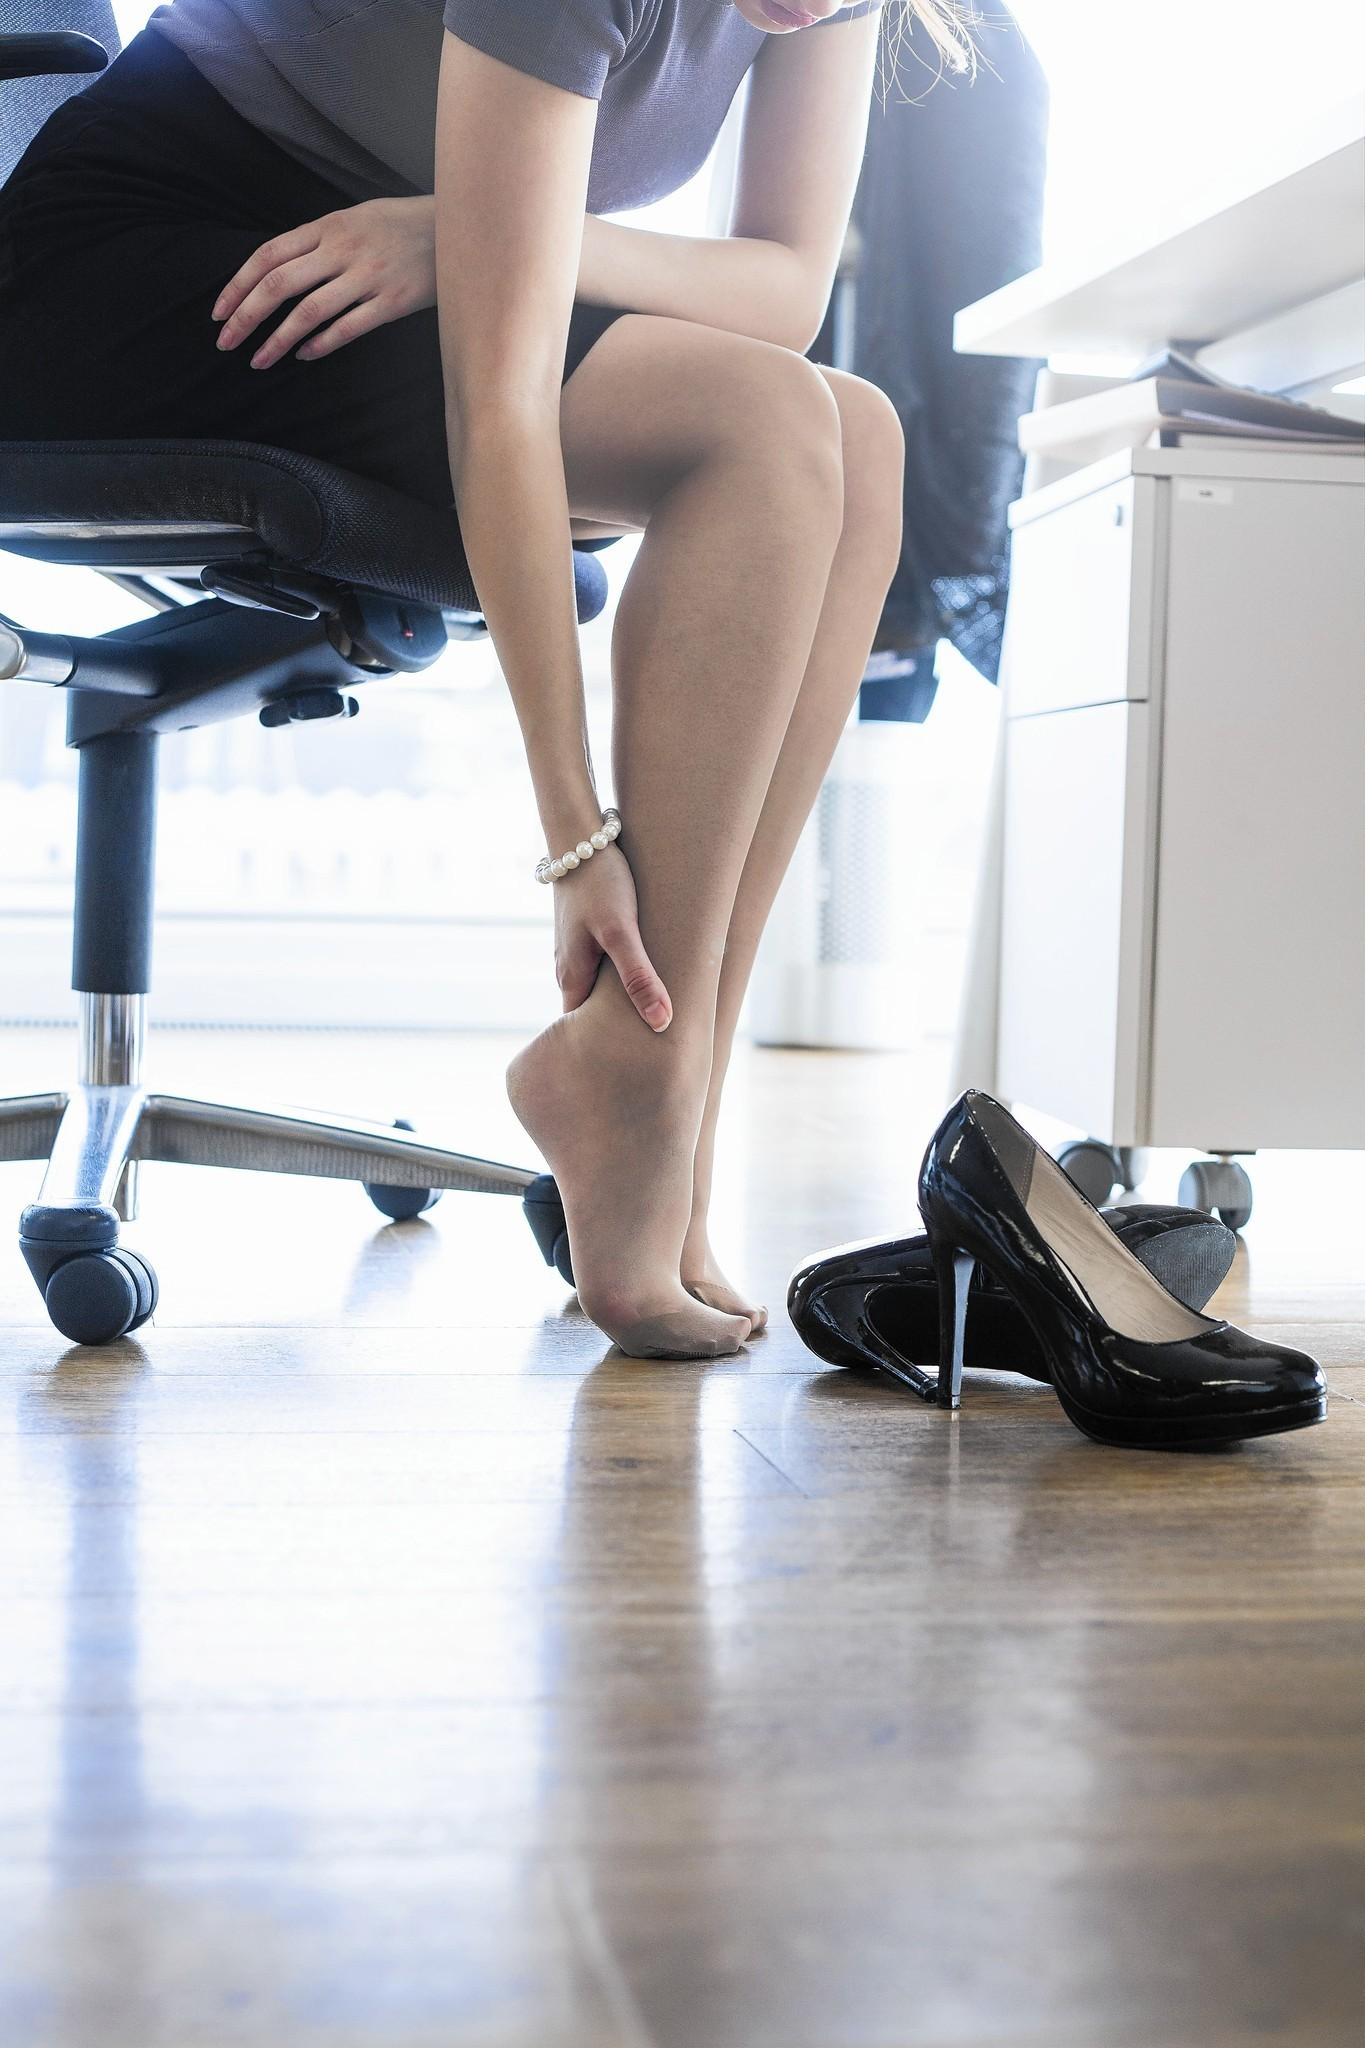 How to reduce foot pain from wearing high heels